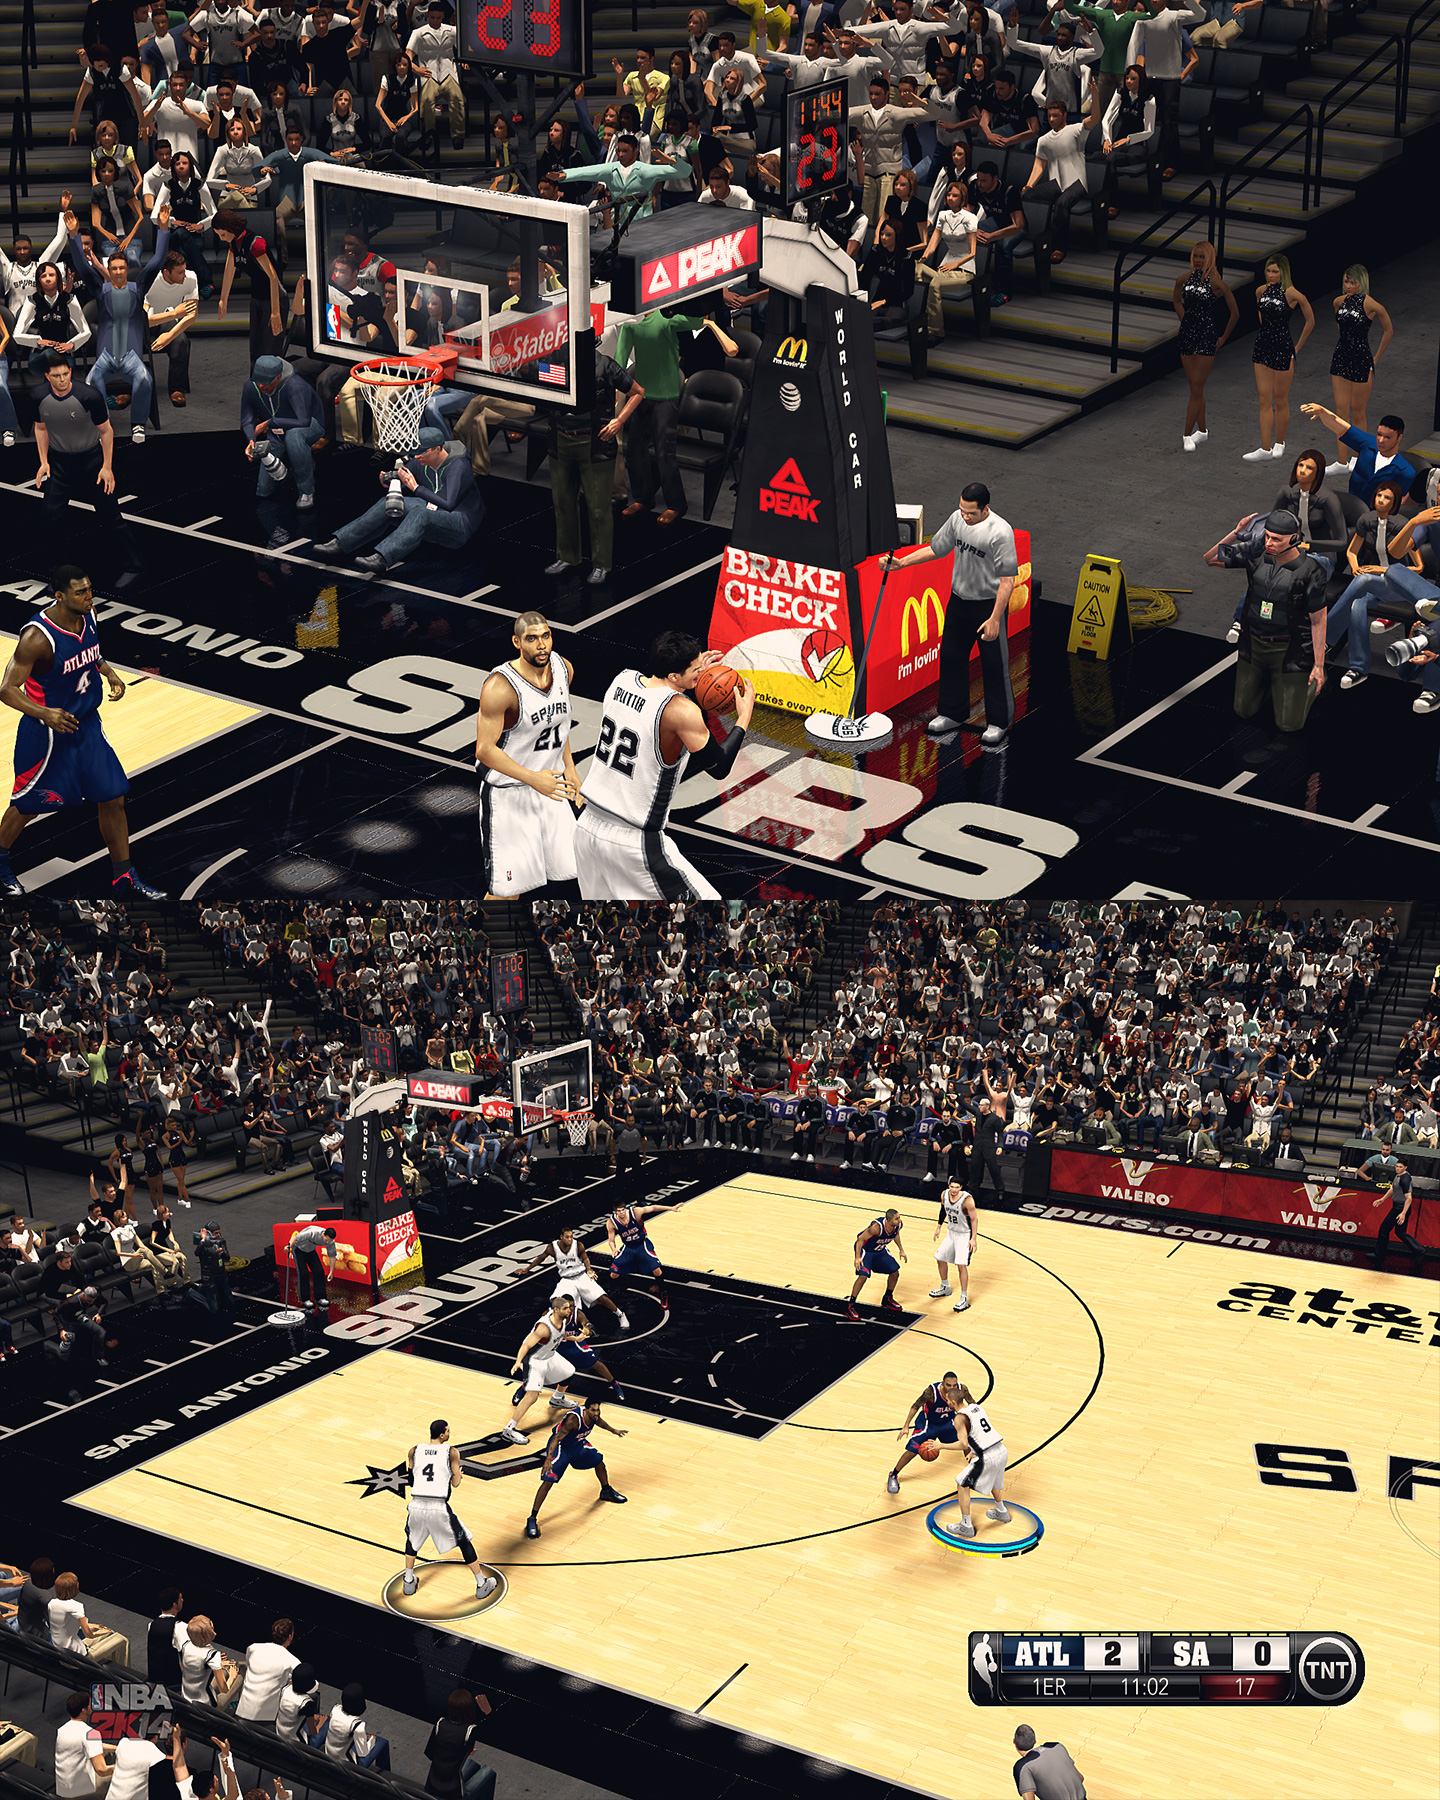 San Antonio Spurs HD Arena